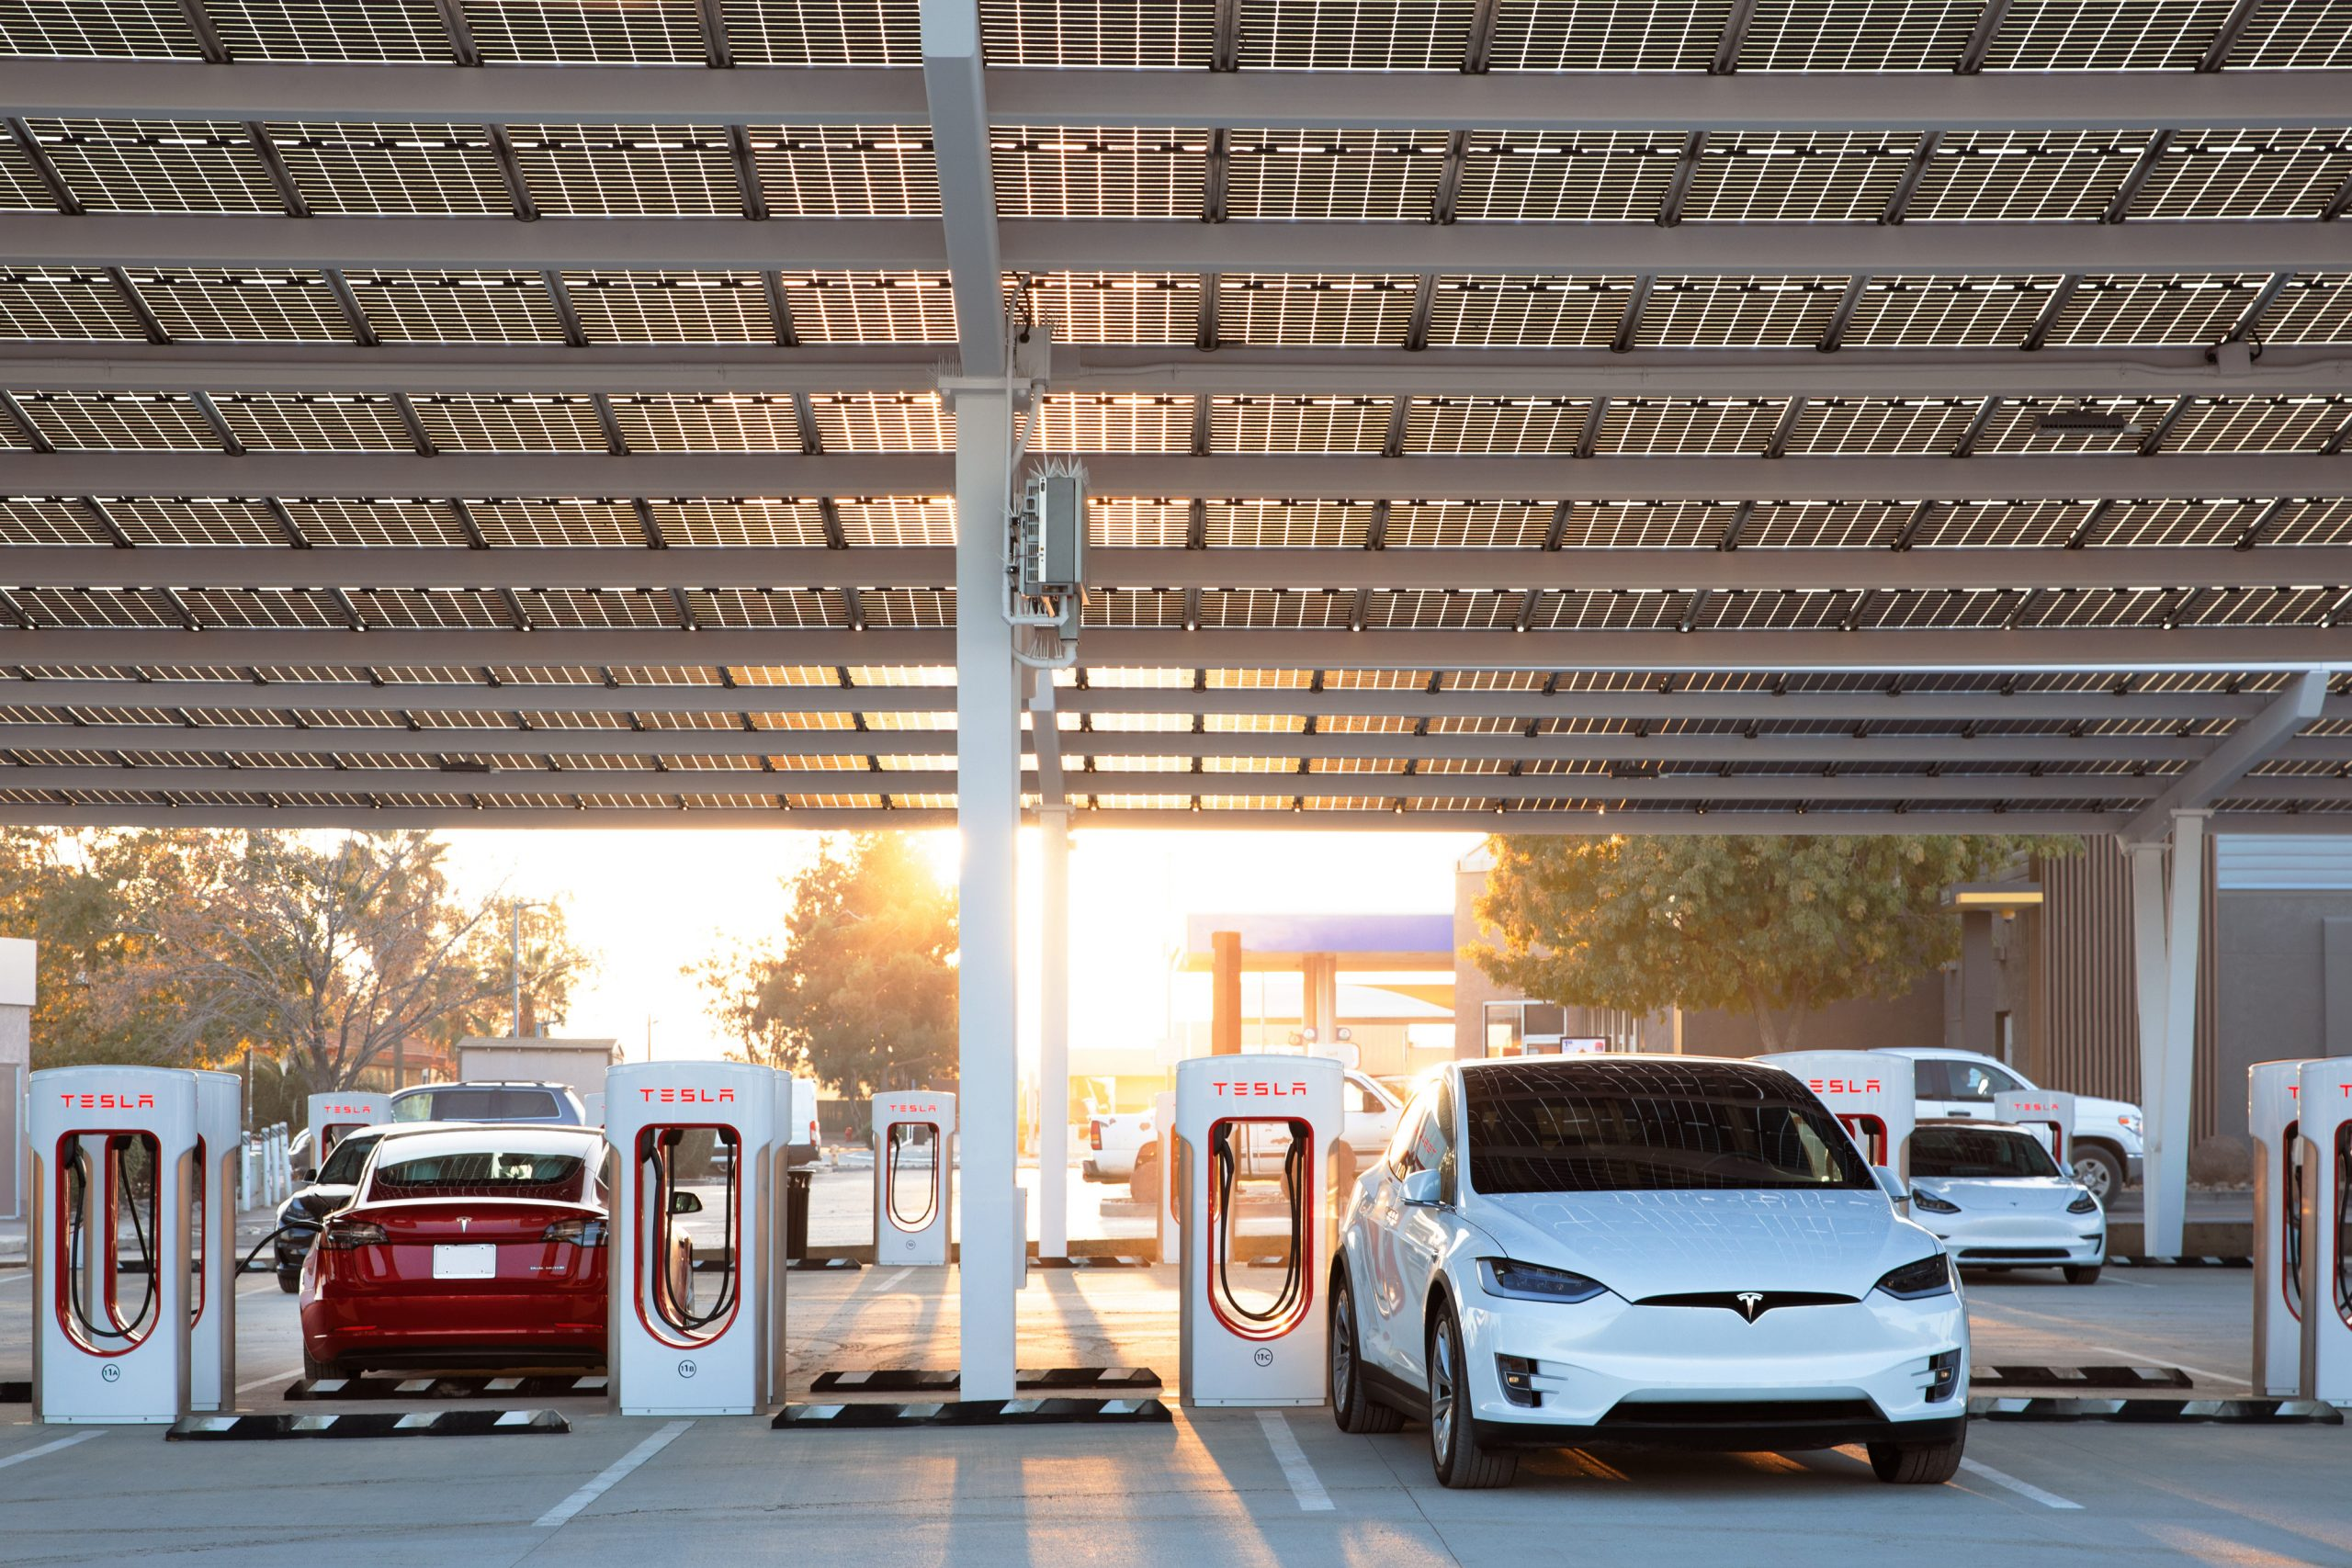 Tesla can apply for Bipartisan bill funding after opening Superchargers to other OEMs